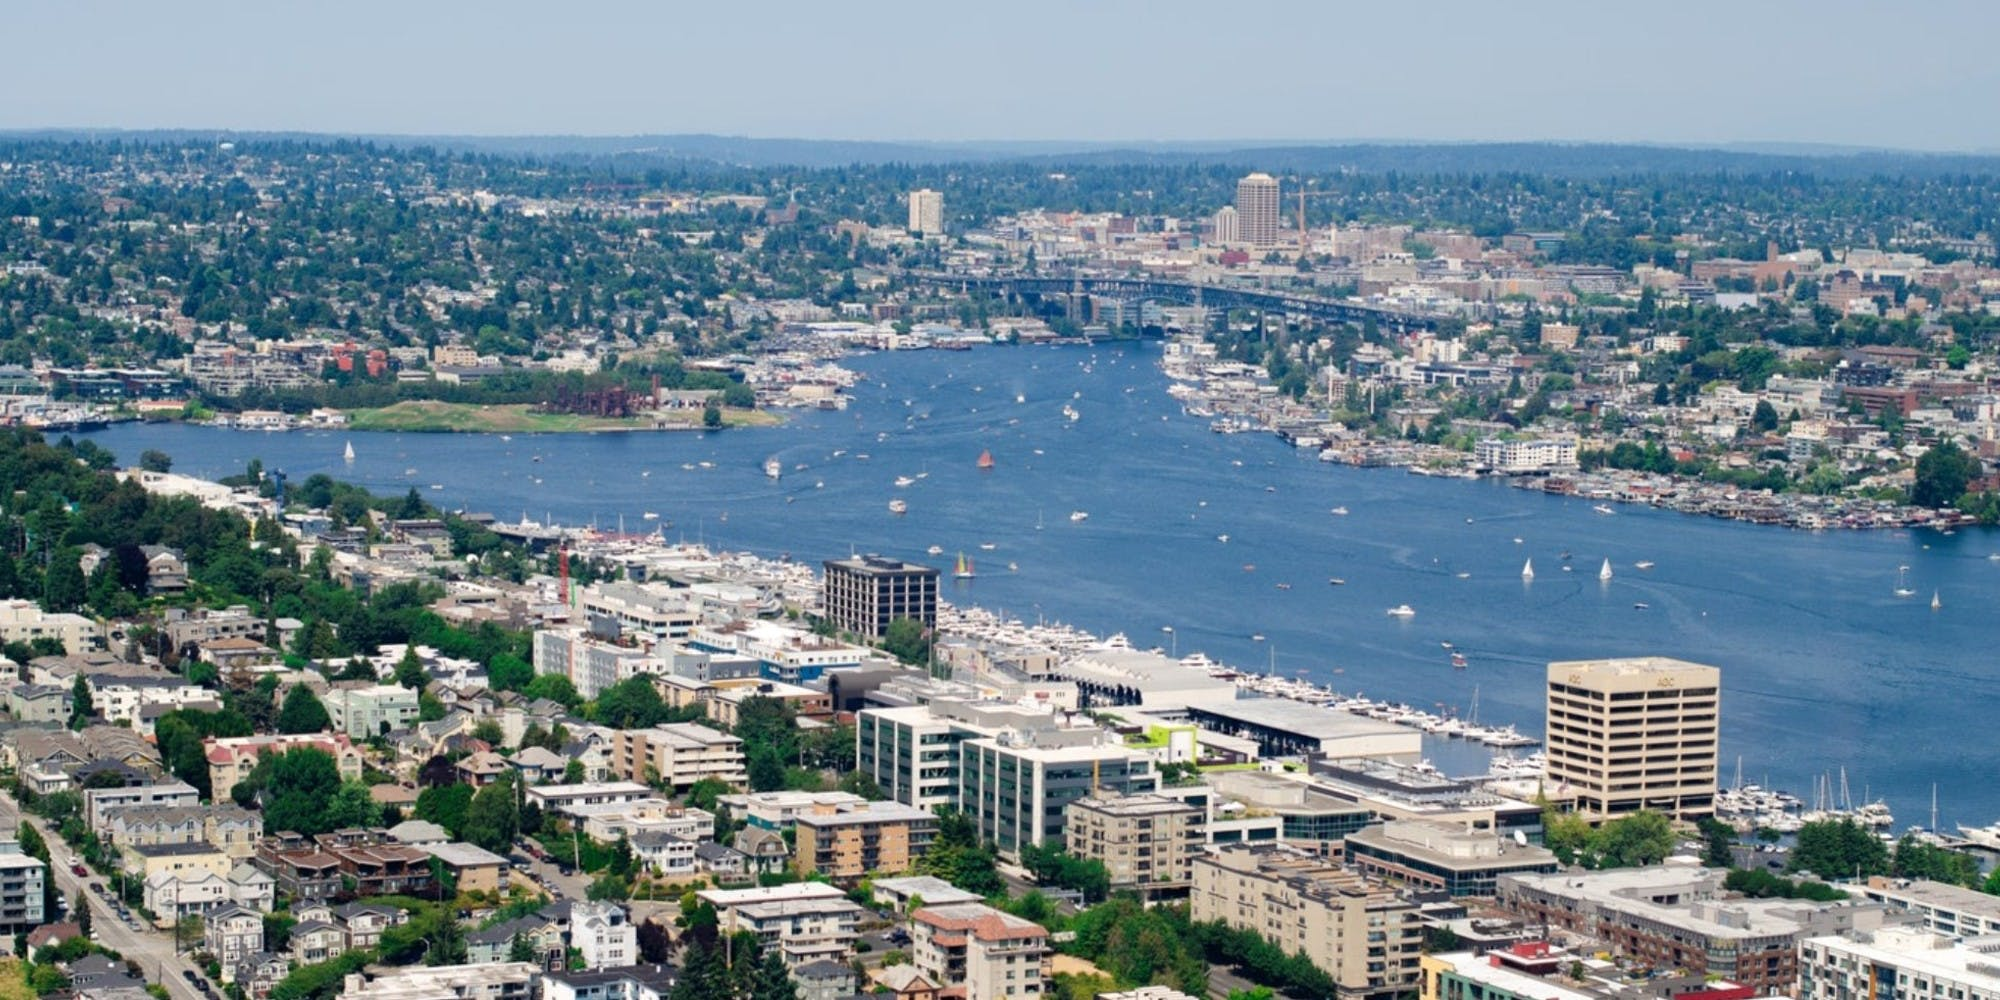 Aerial view of Lake Union